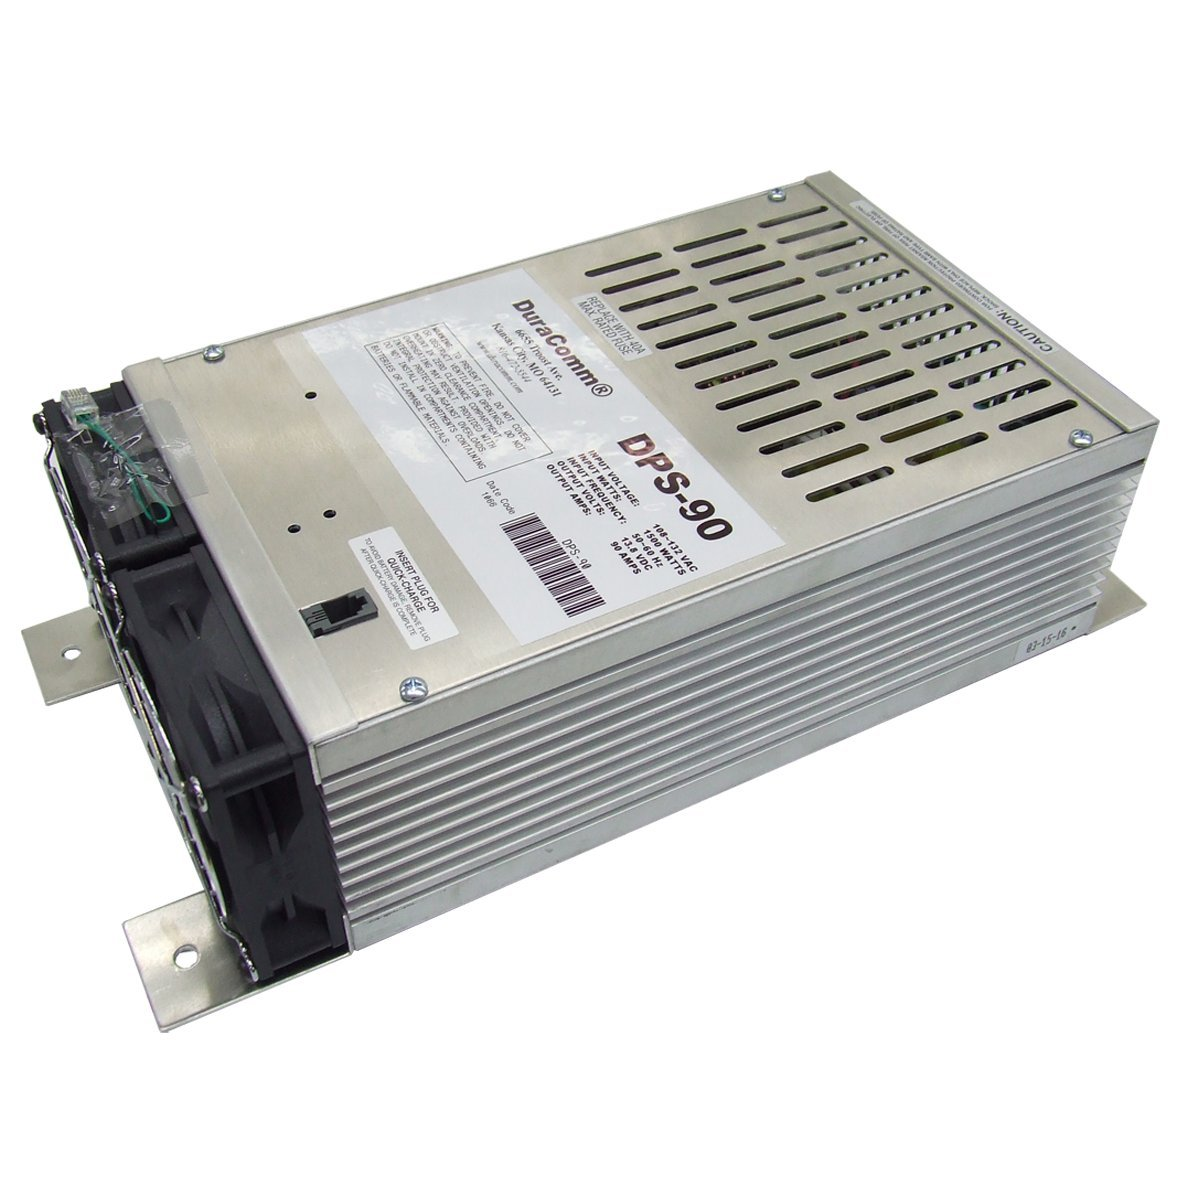 DuraComm DPS-90 Power Source Utilities with Low Noise Supply